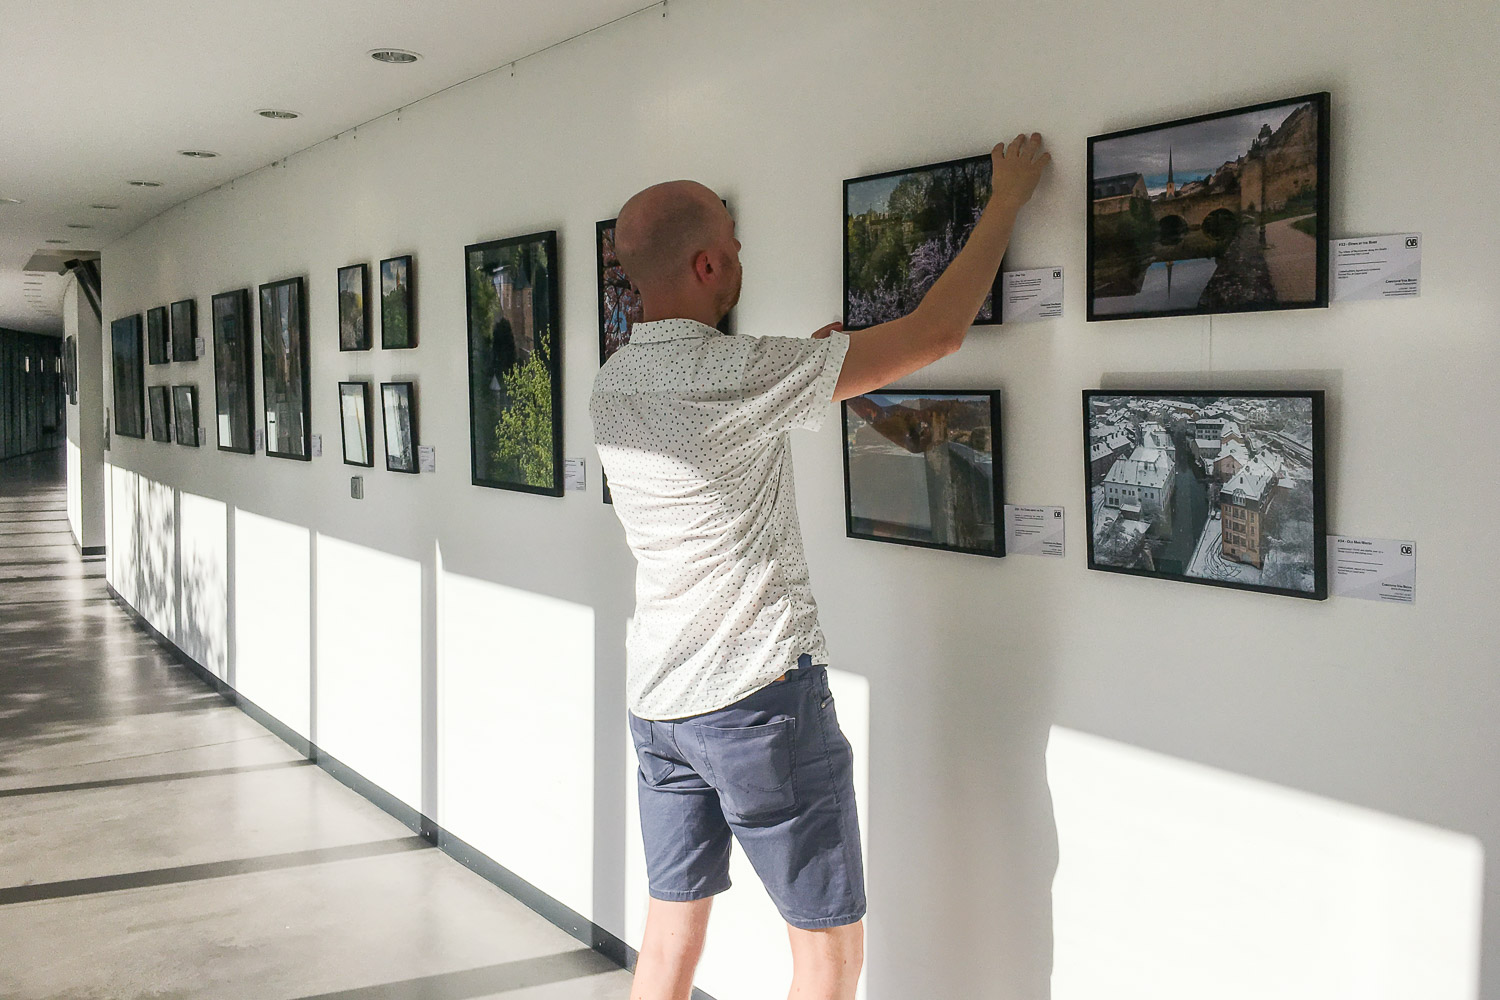 Setting up the exhibition at the European Court of Auditors - Photography exhibition by Christophe Van Biesen at the ECA in Luxembourg City